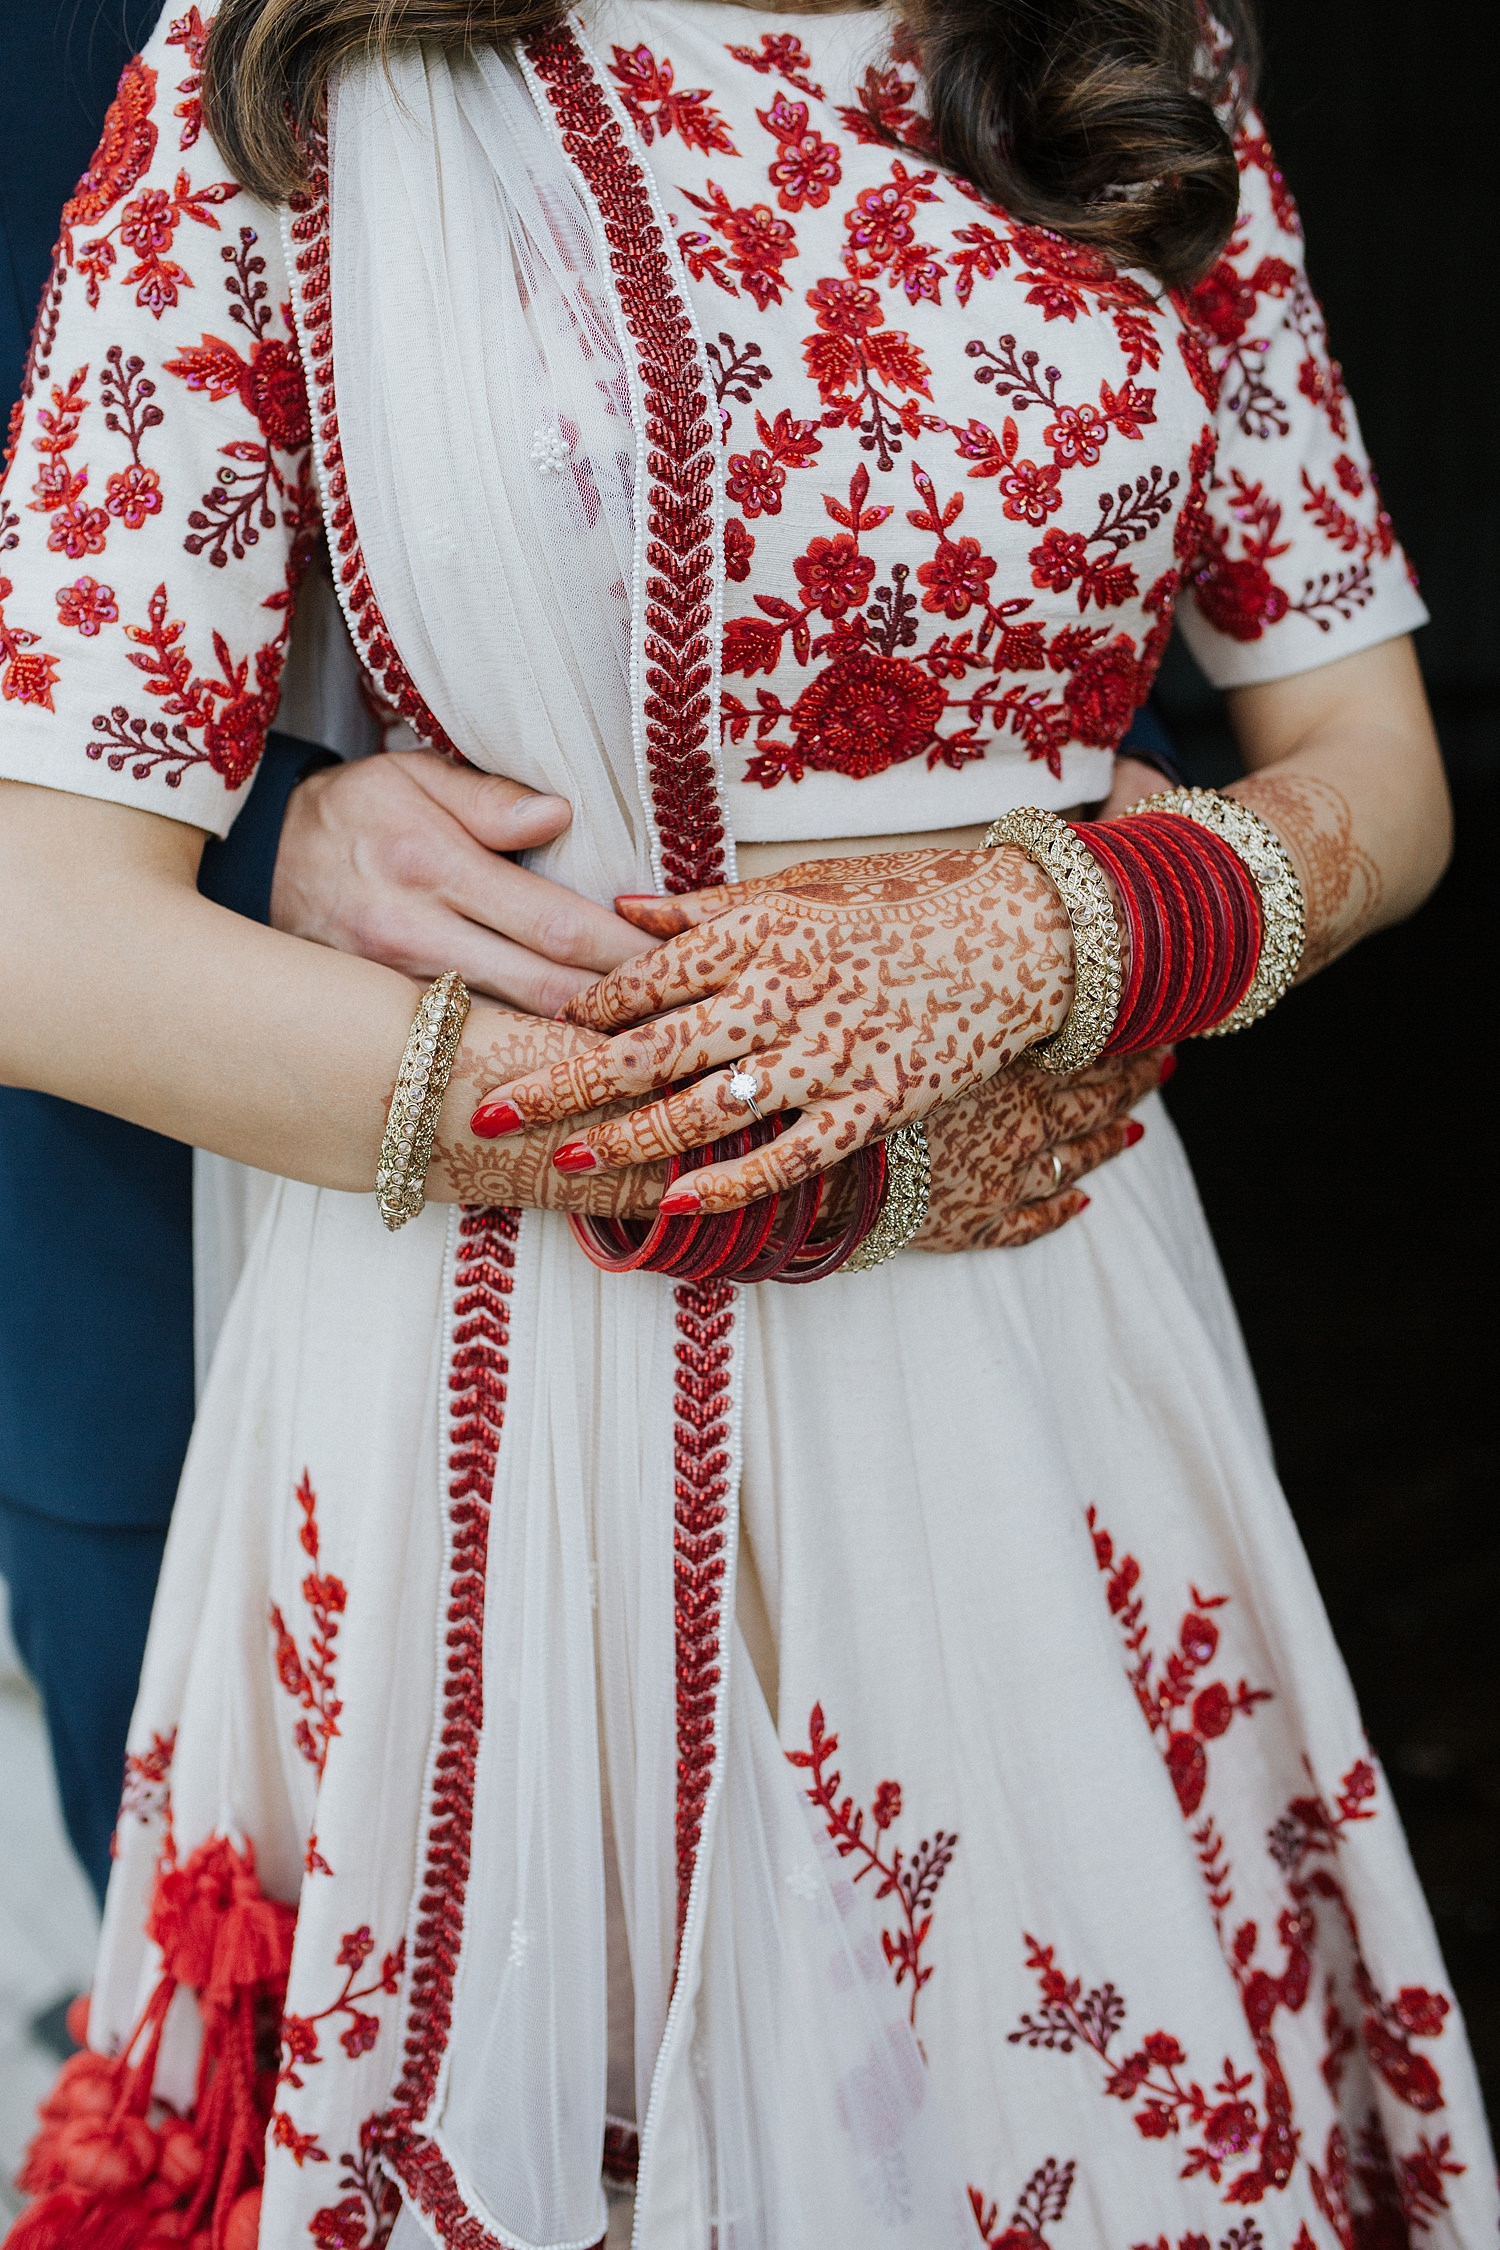 destination,documentary,fine art,flanagan farm,indian,indian bride,maine,new england,portland,sarah morrill,sari,wedding,